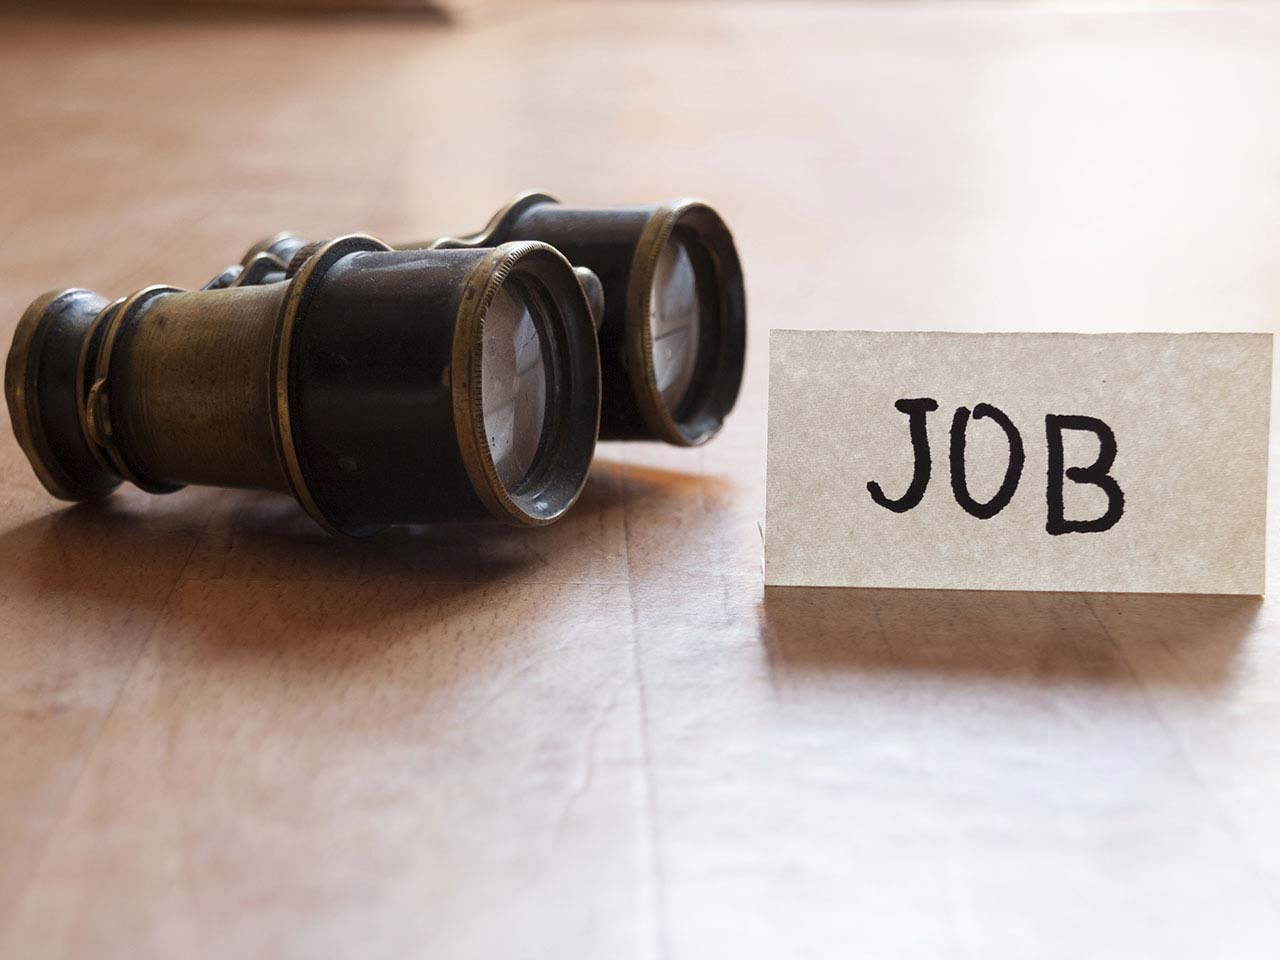 Binoculars and job sign denoting career search